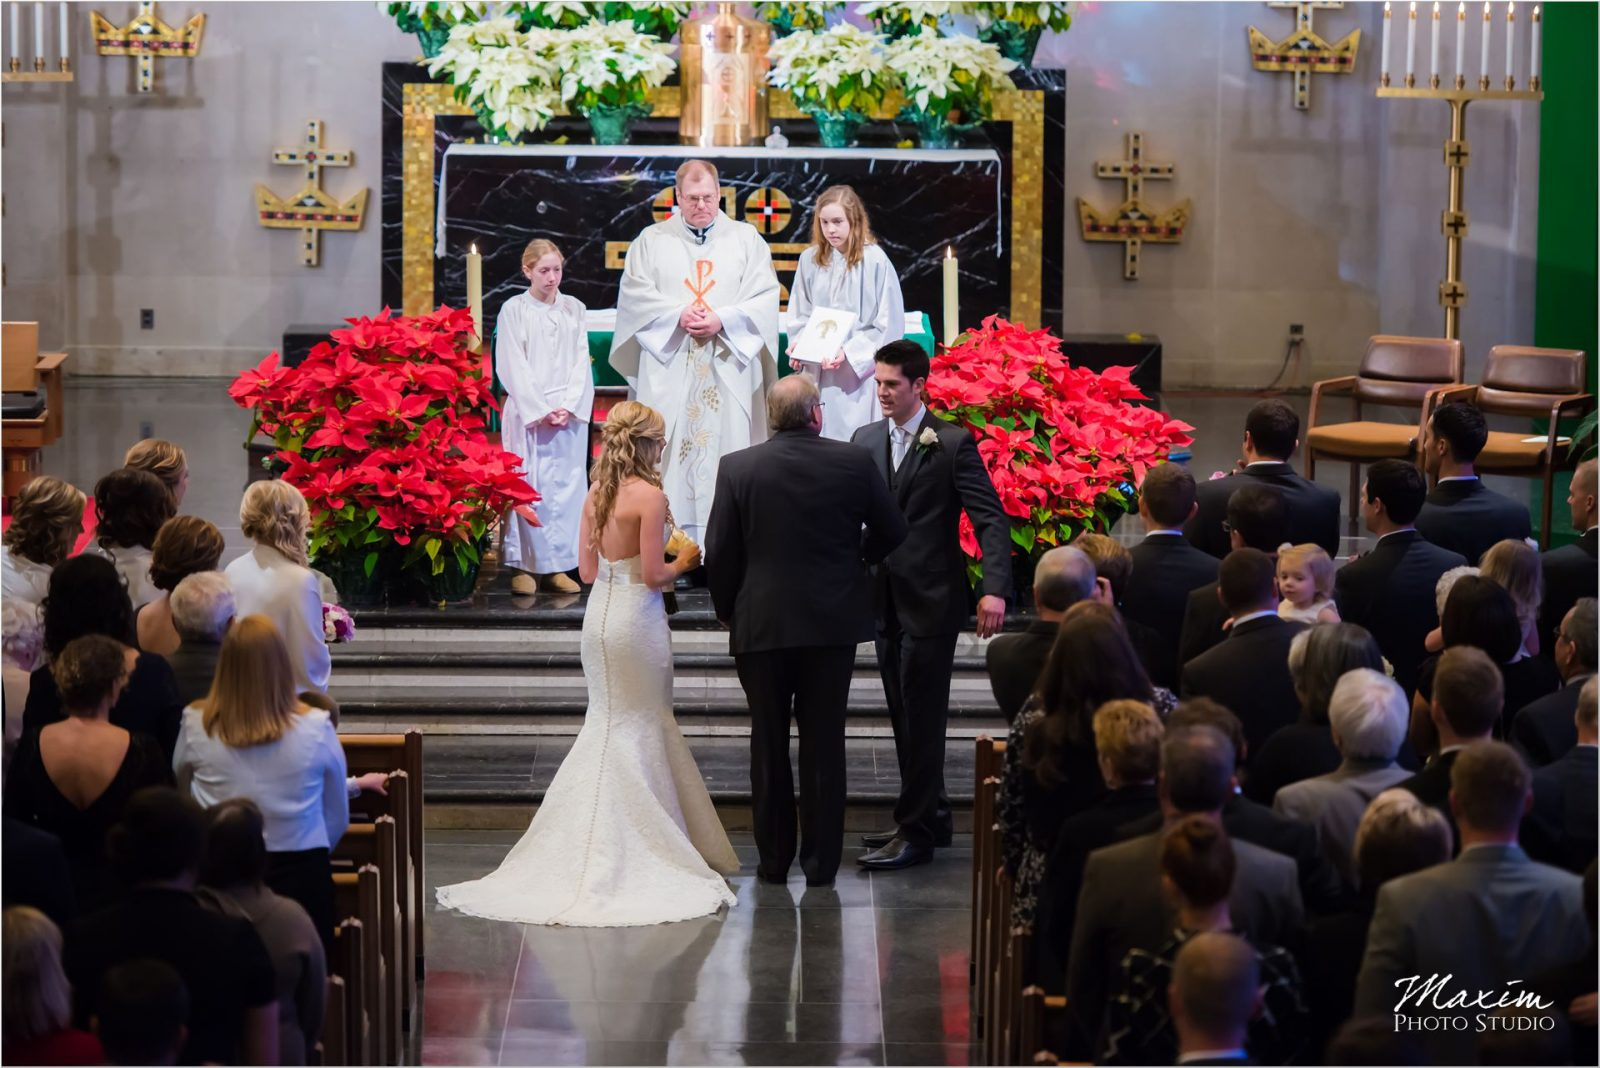 Our Lord Christ the King Wedding Ceremony